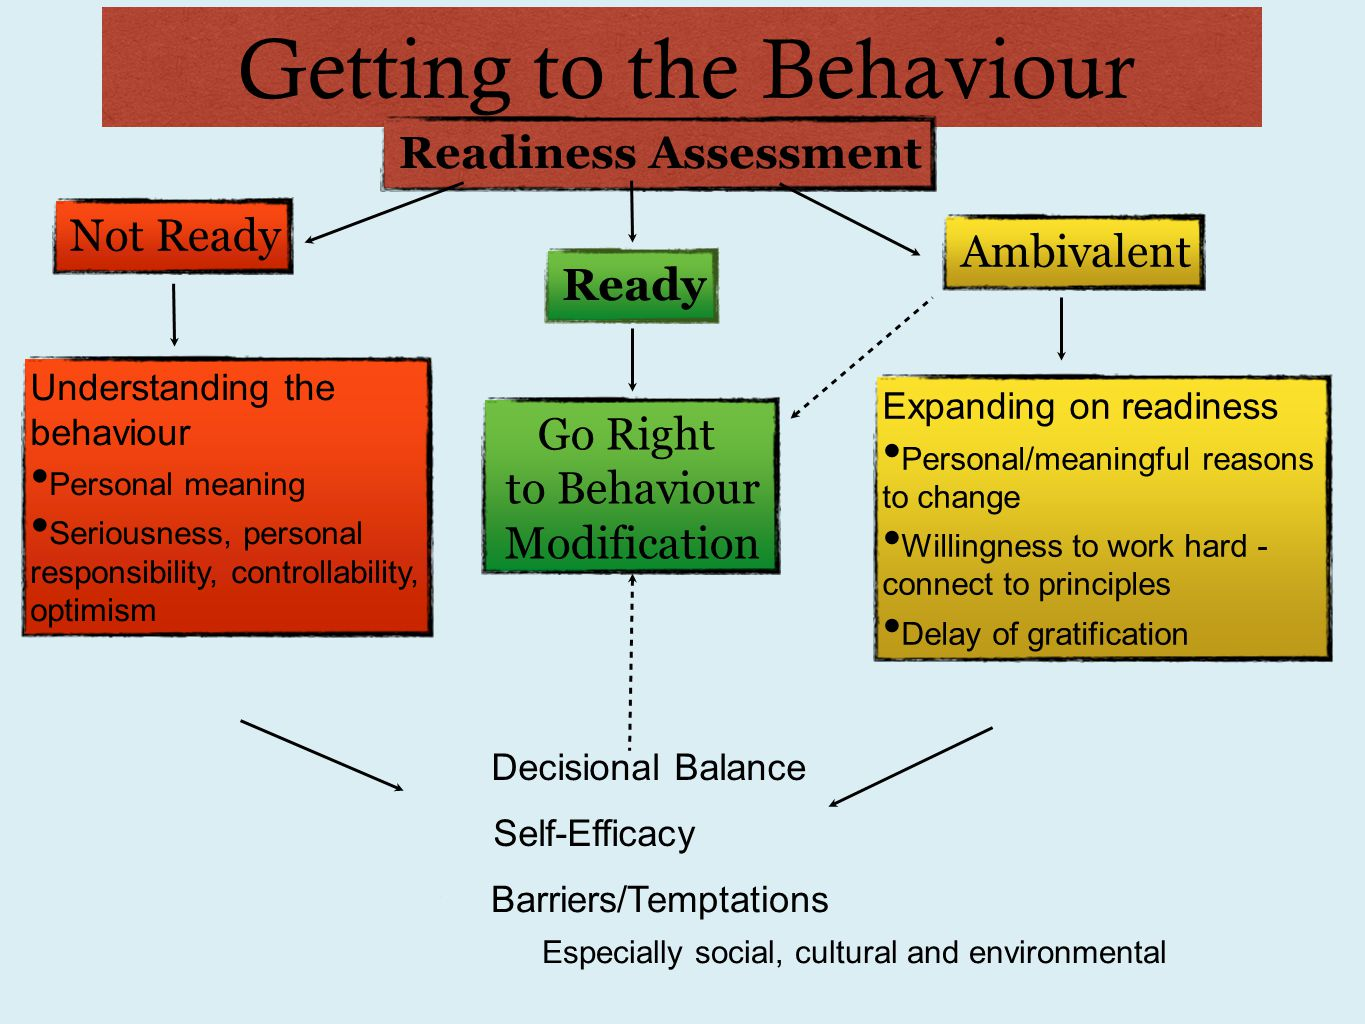 Getting to the Behaviour Readiness AssessmentNot ReadyReadyGo Right to Behaviour Modification Ambivalent Understanding the behaviour Personal meaning Seriousness, personal responsibility, controllability, optimism Expanding on readiness Personal/meaningful reasons to change Willingness to work hard - connect to principles Delay of gratification Barriers/Temptations Especially social, cultural and environmental Decisional Balance Self-Efficacy